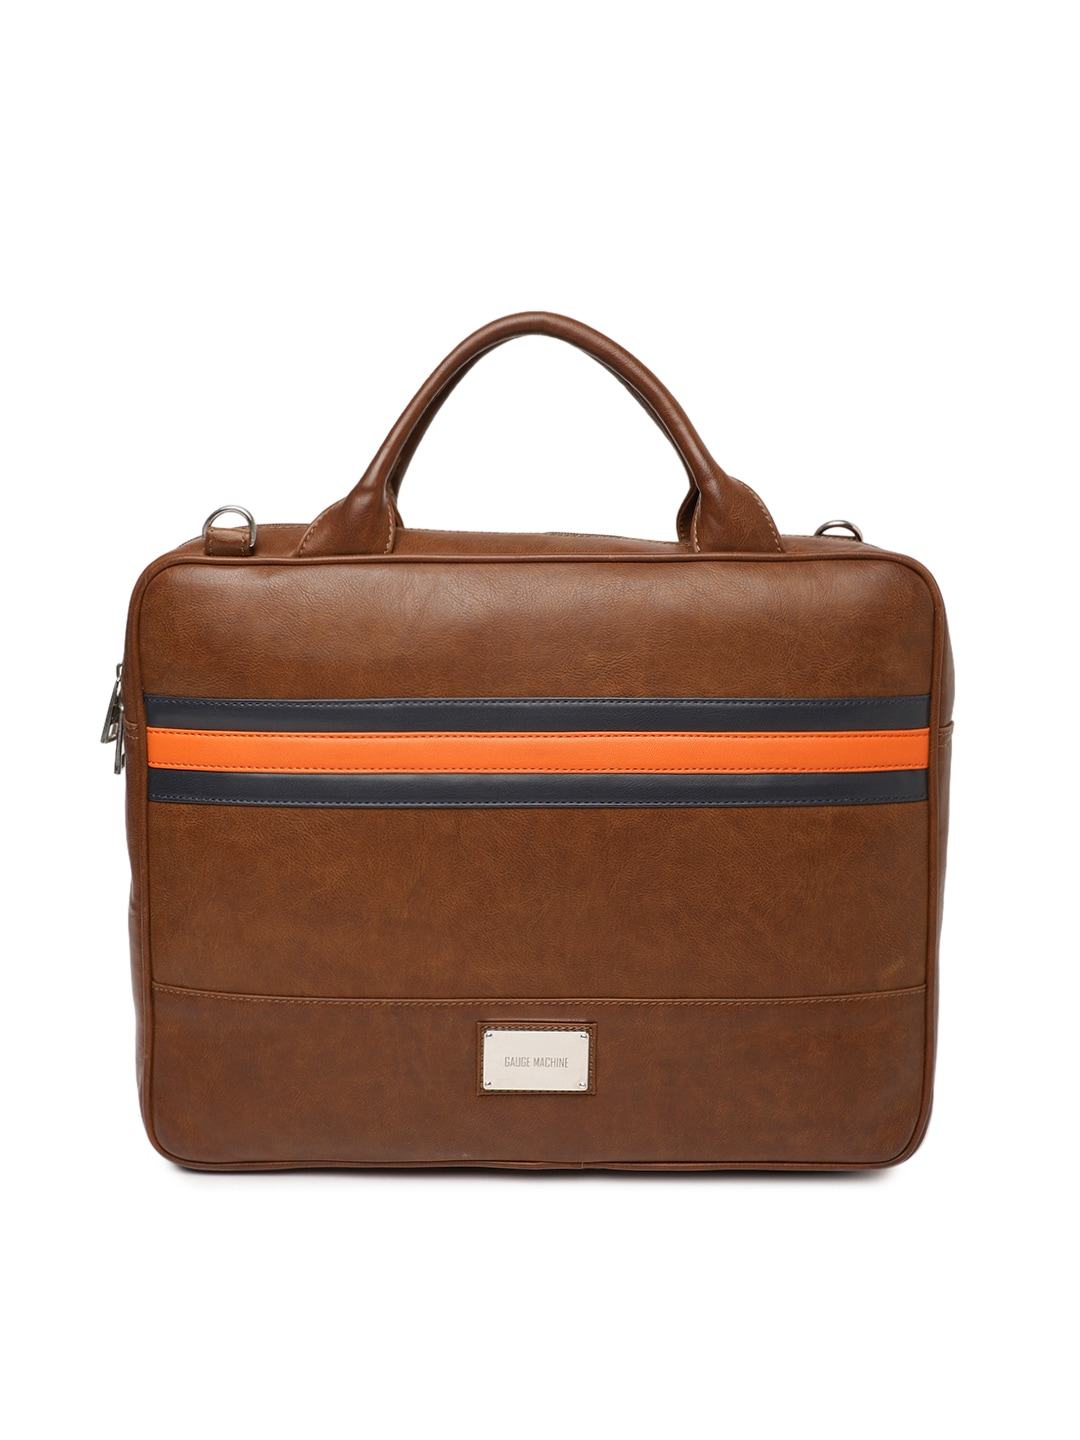 9e9ad4bf74dc Laptop Bag - Buy Laptop Bags & Backpack Online in India | Myntra